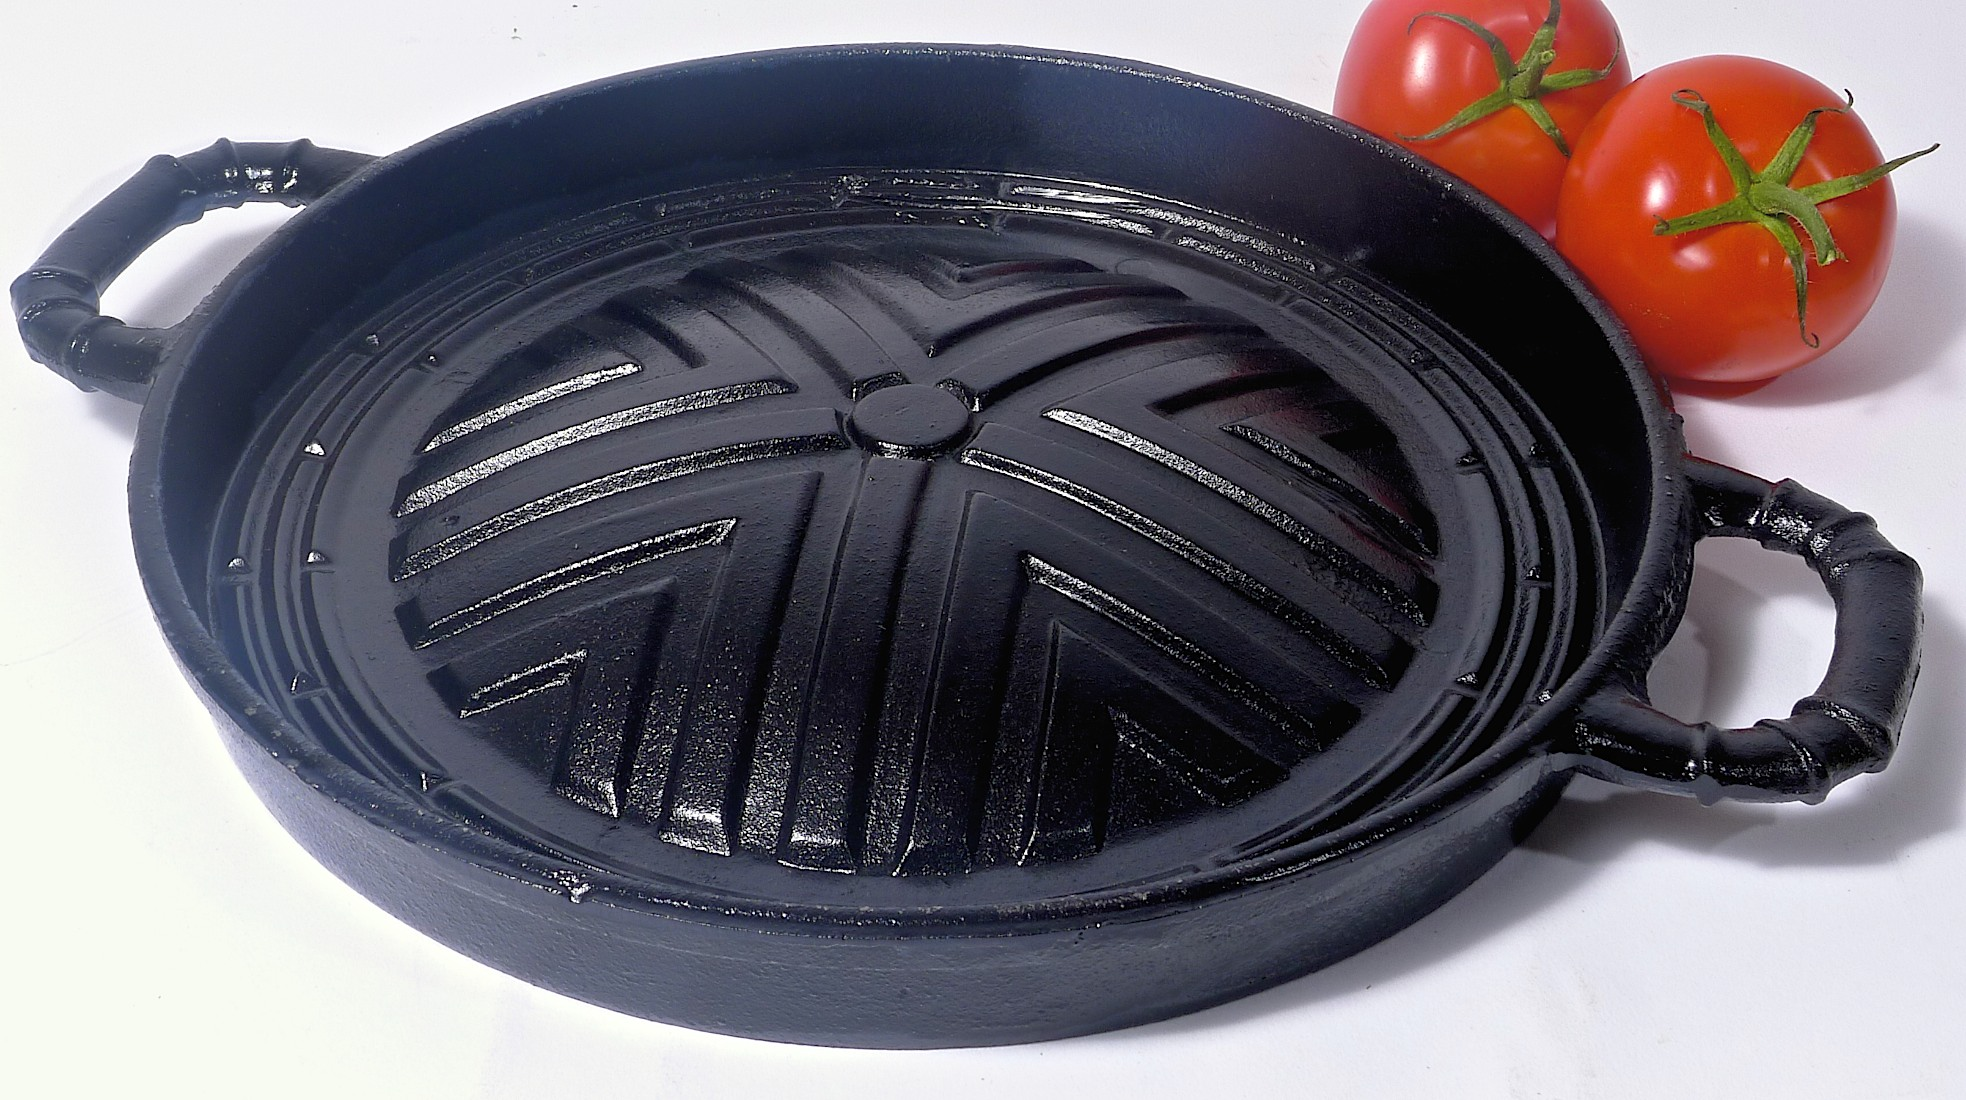 Image of 11-Inch Mongolian Dome Grill